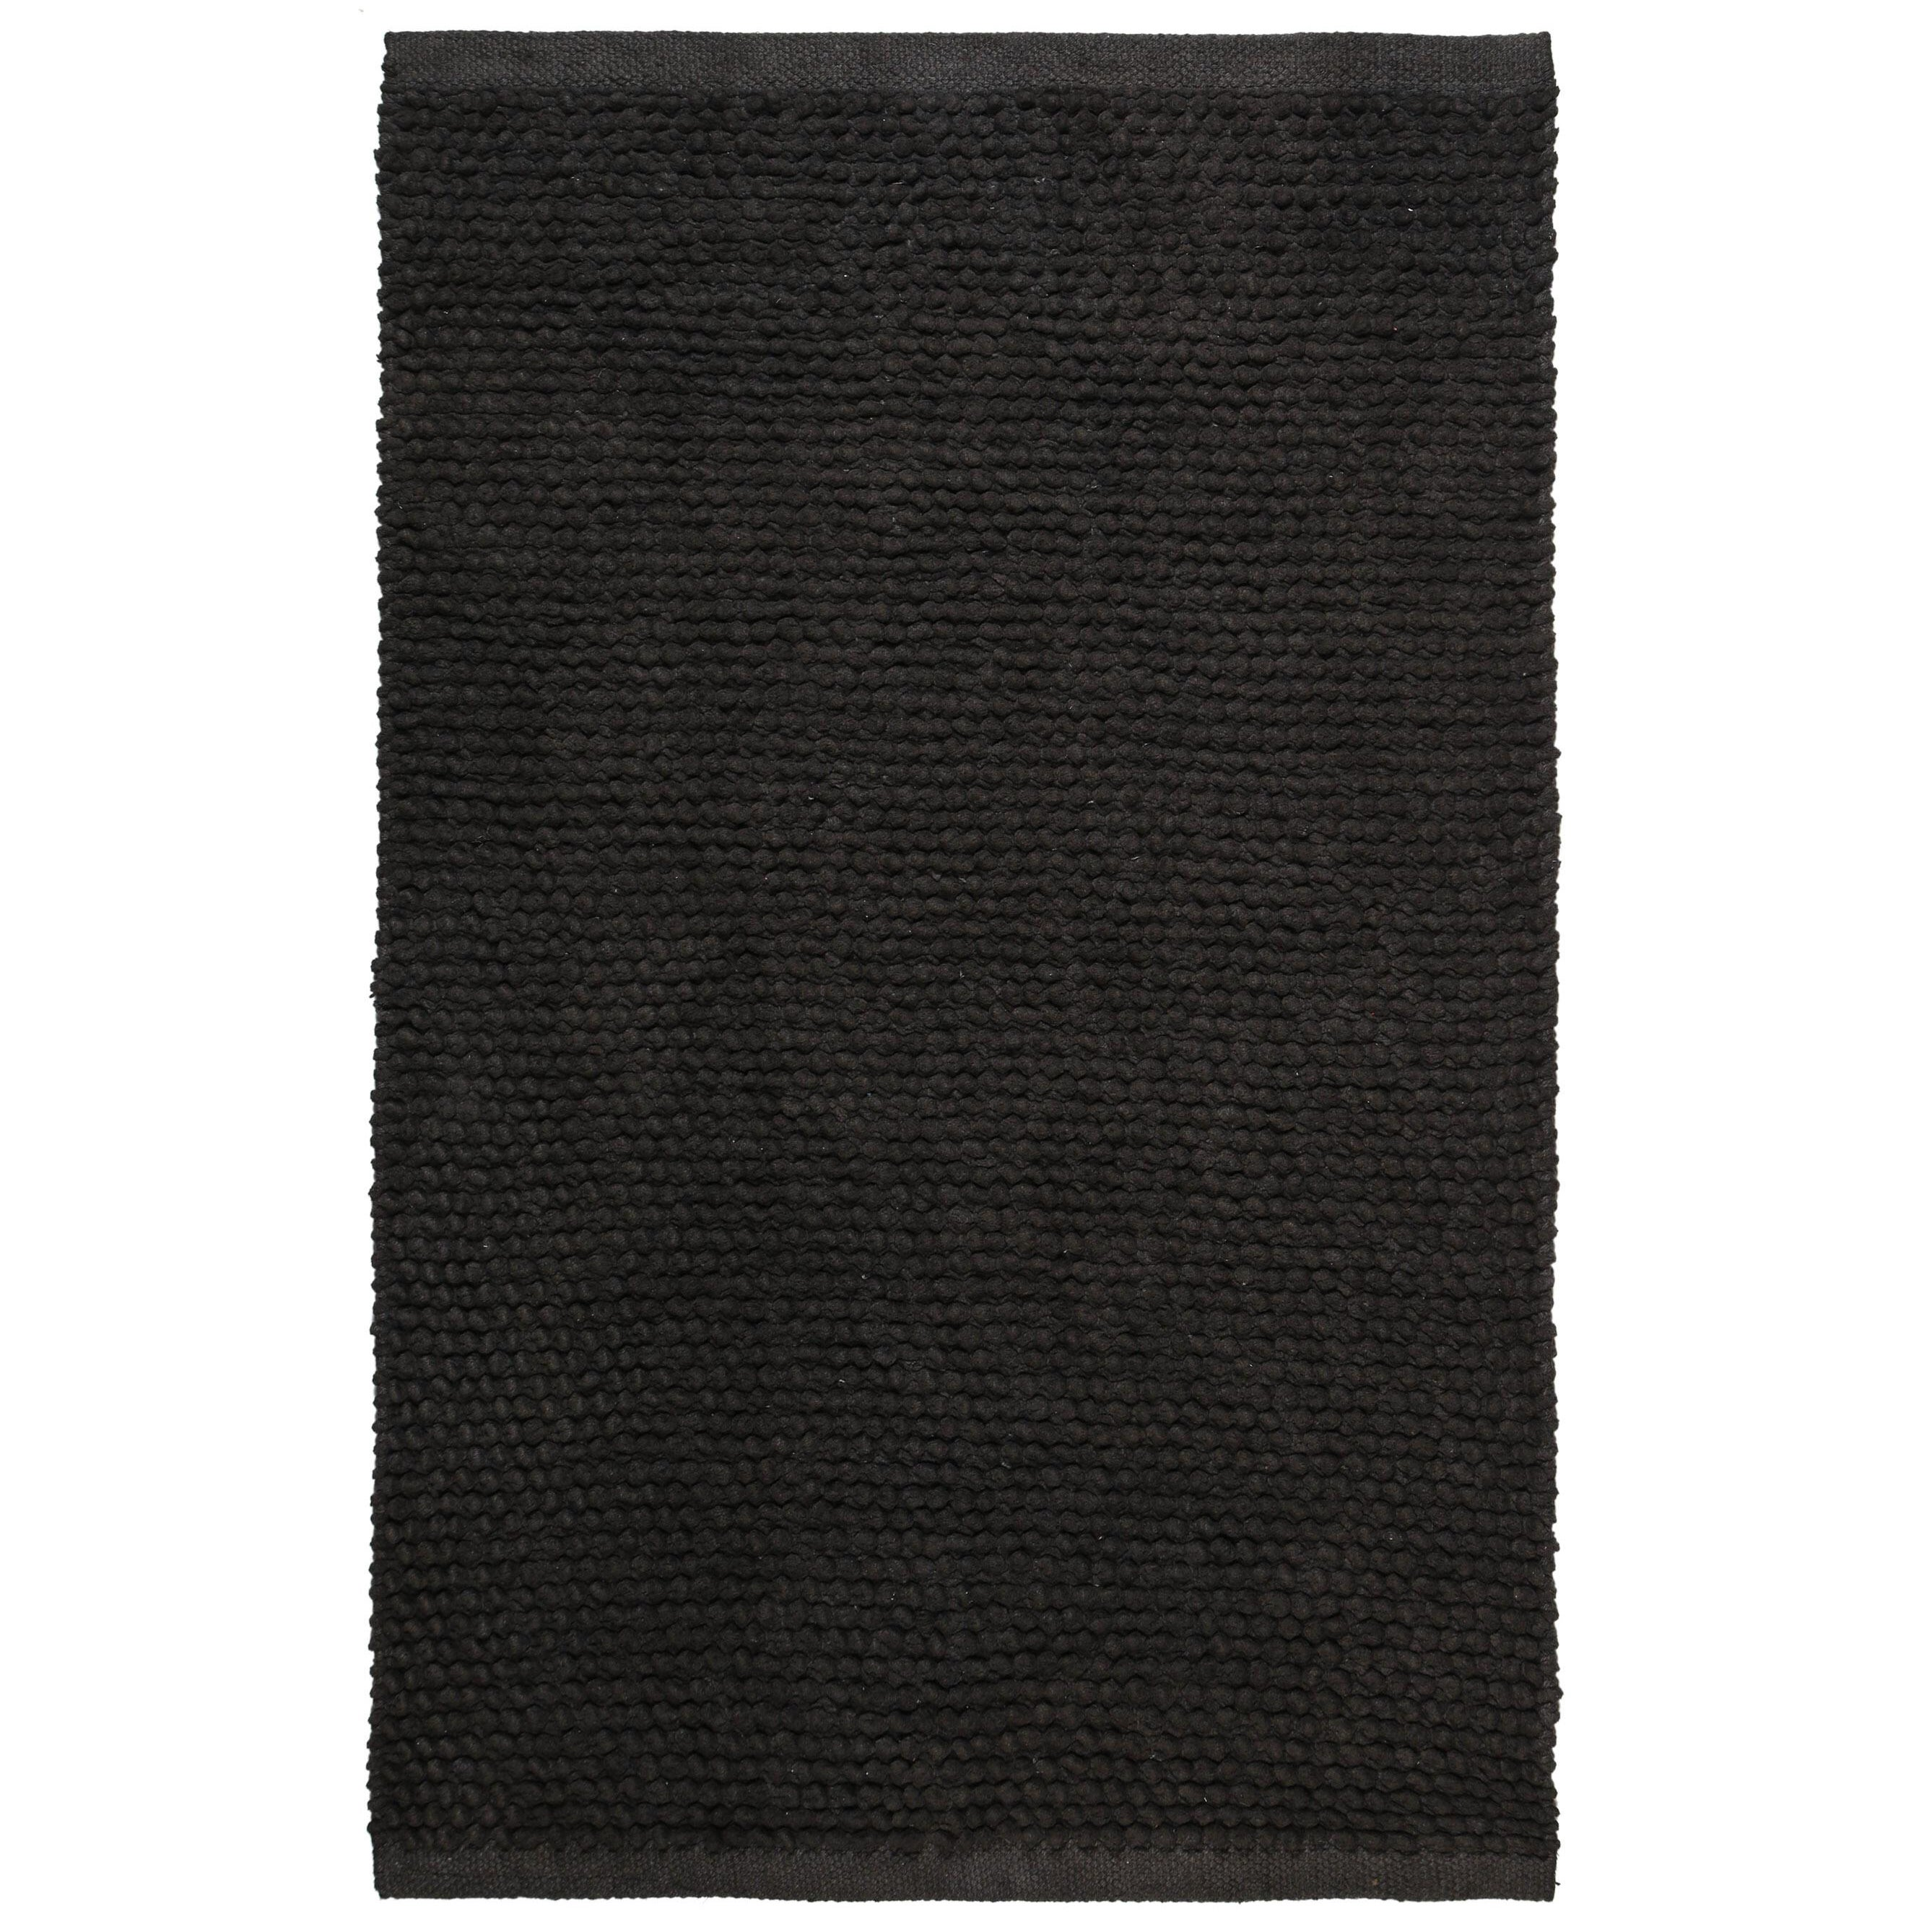 Plush Nubby Charcoal Bath Rug 21 X 34 On Free Shipping Orders Over 45 11083326